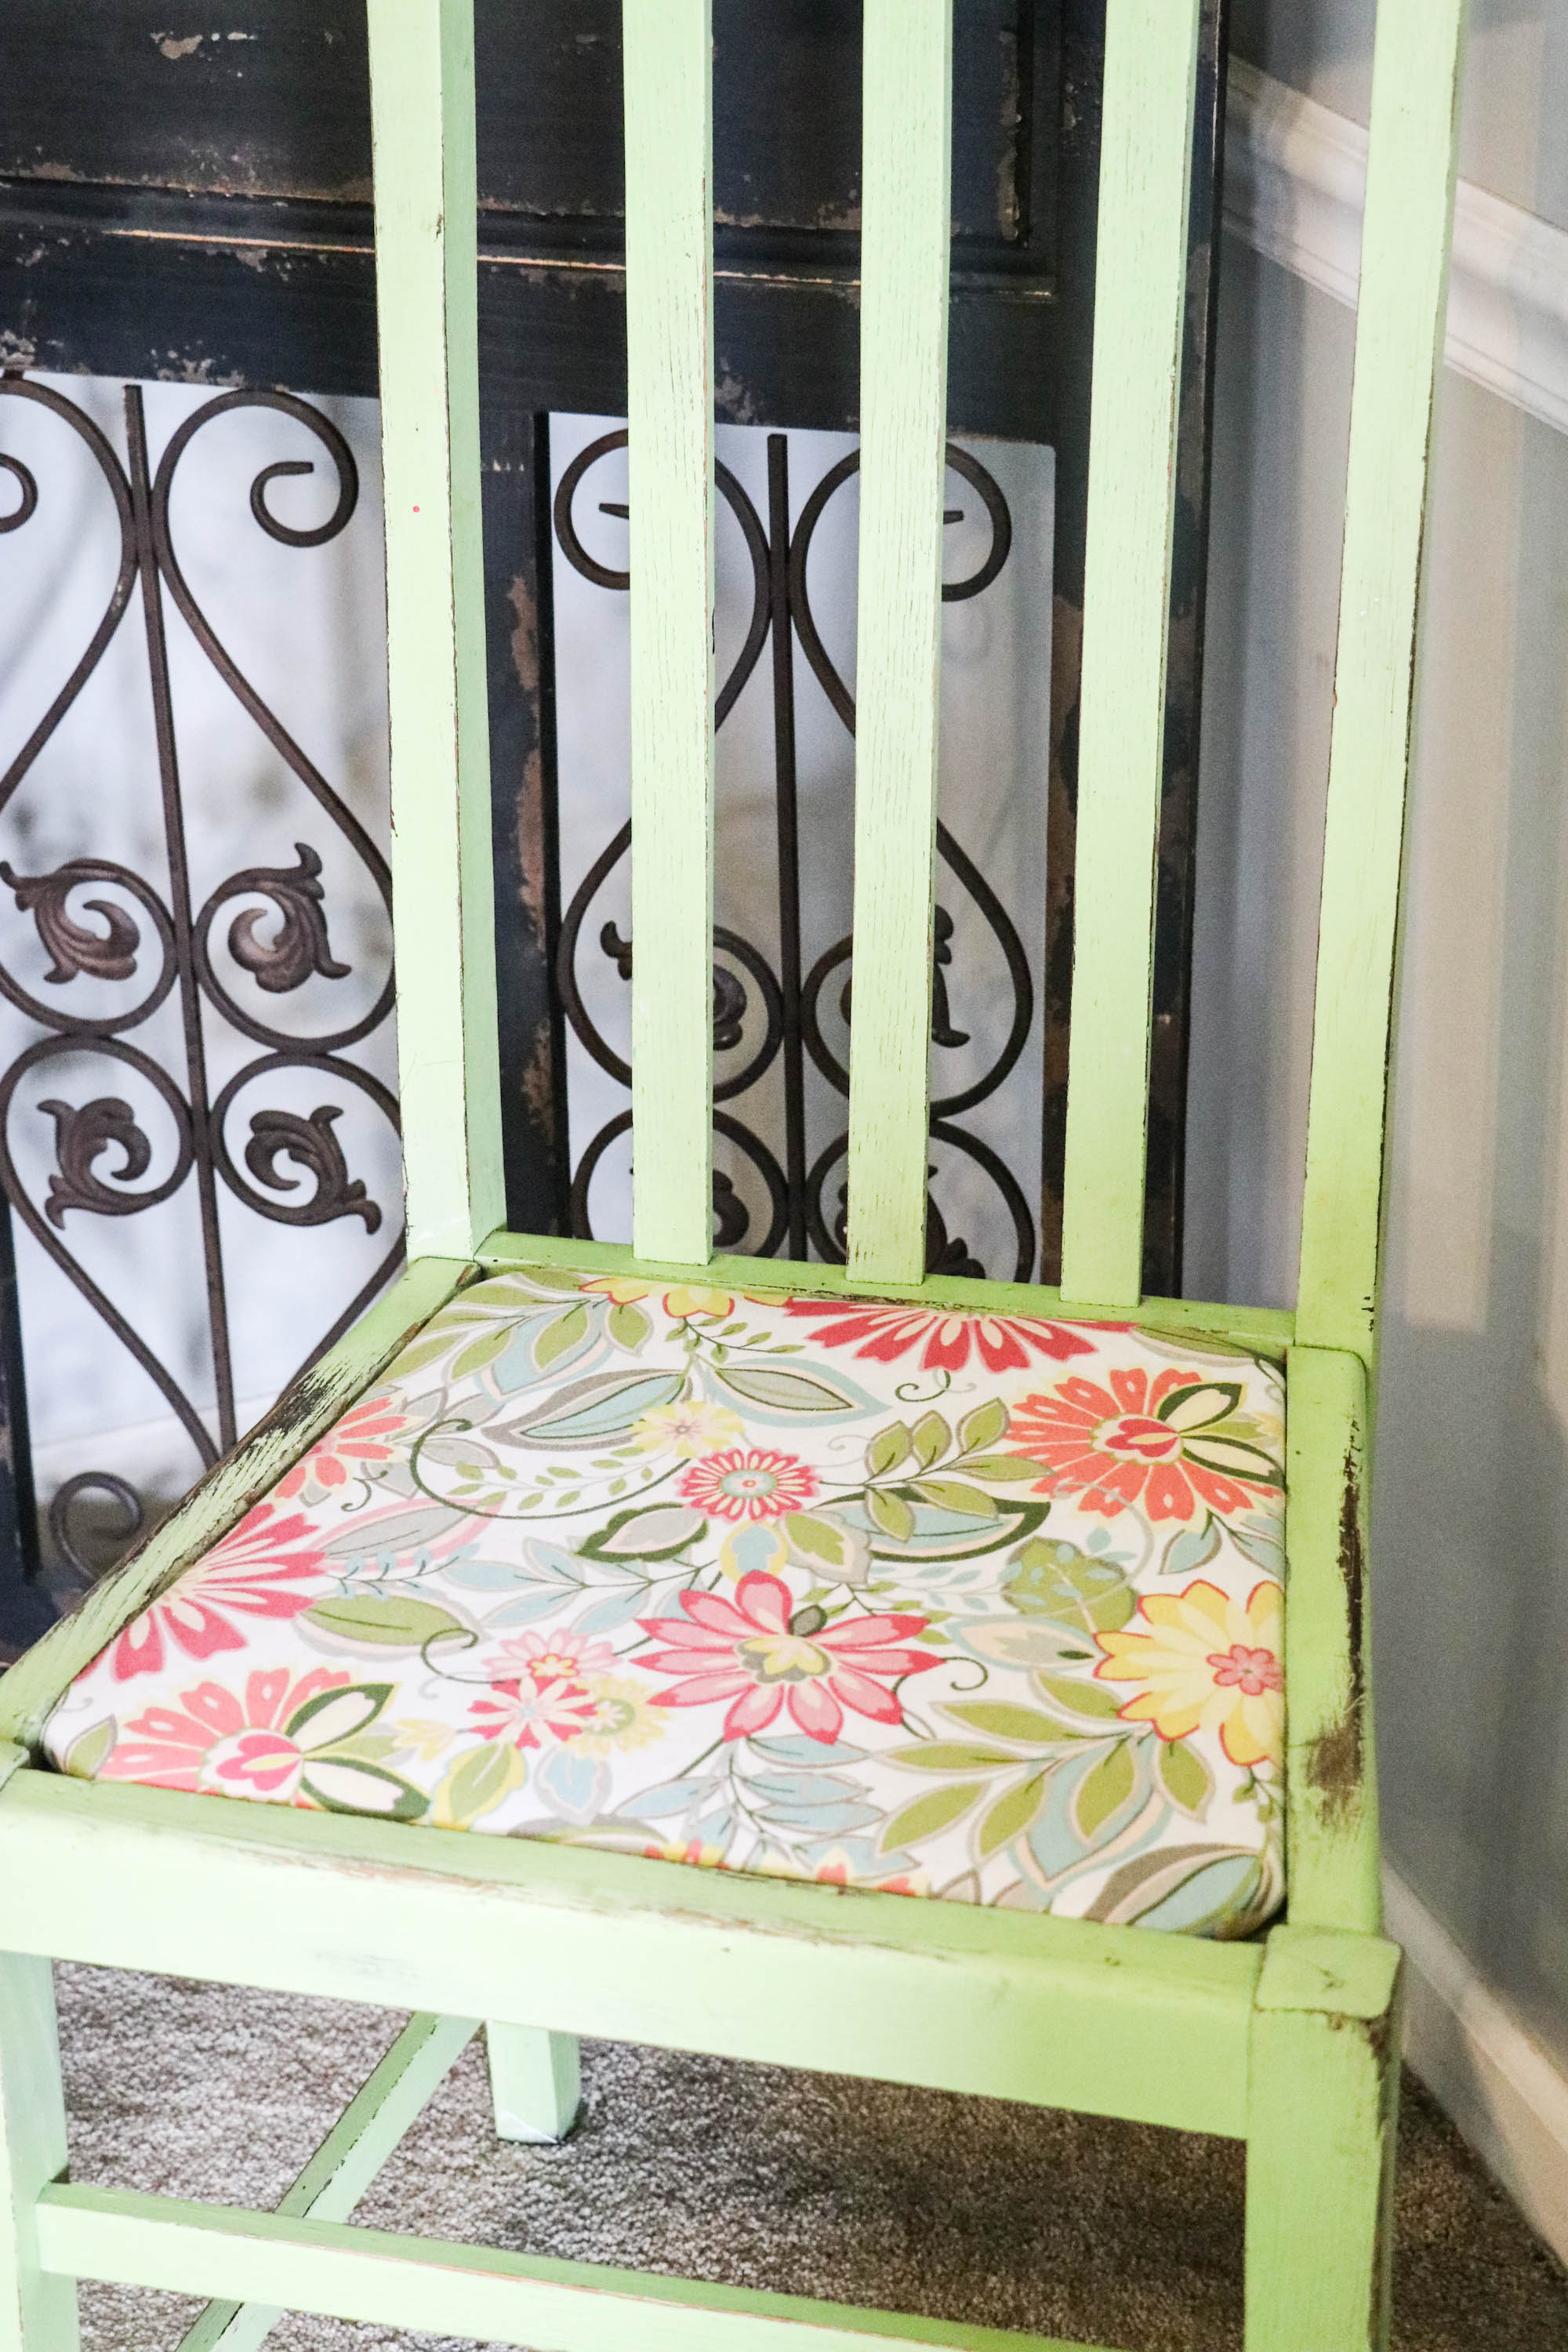 Easy DIY Upholstery on the Kitchen Chairs - Re-Fabbed